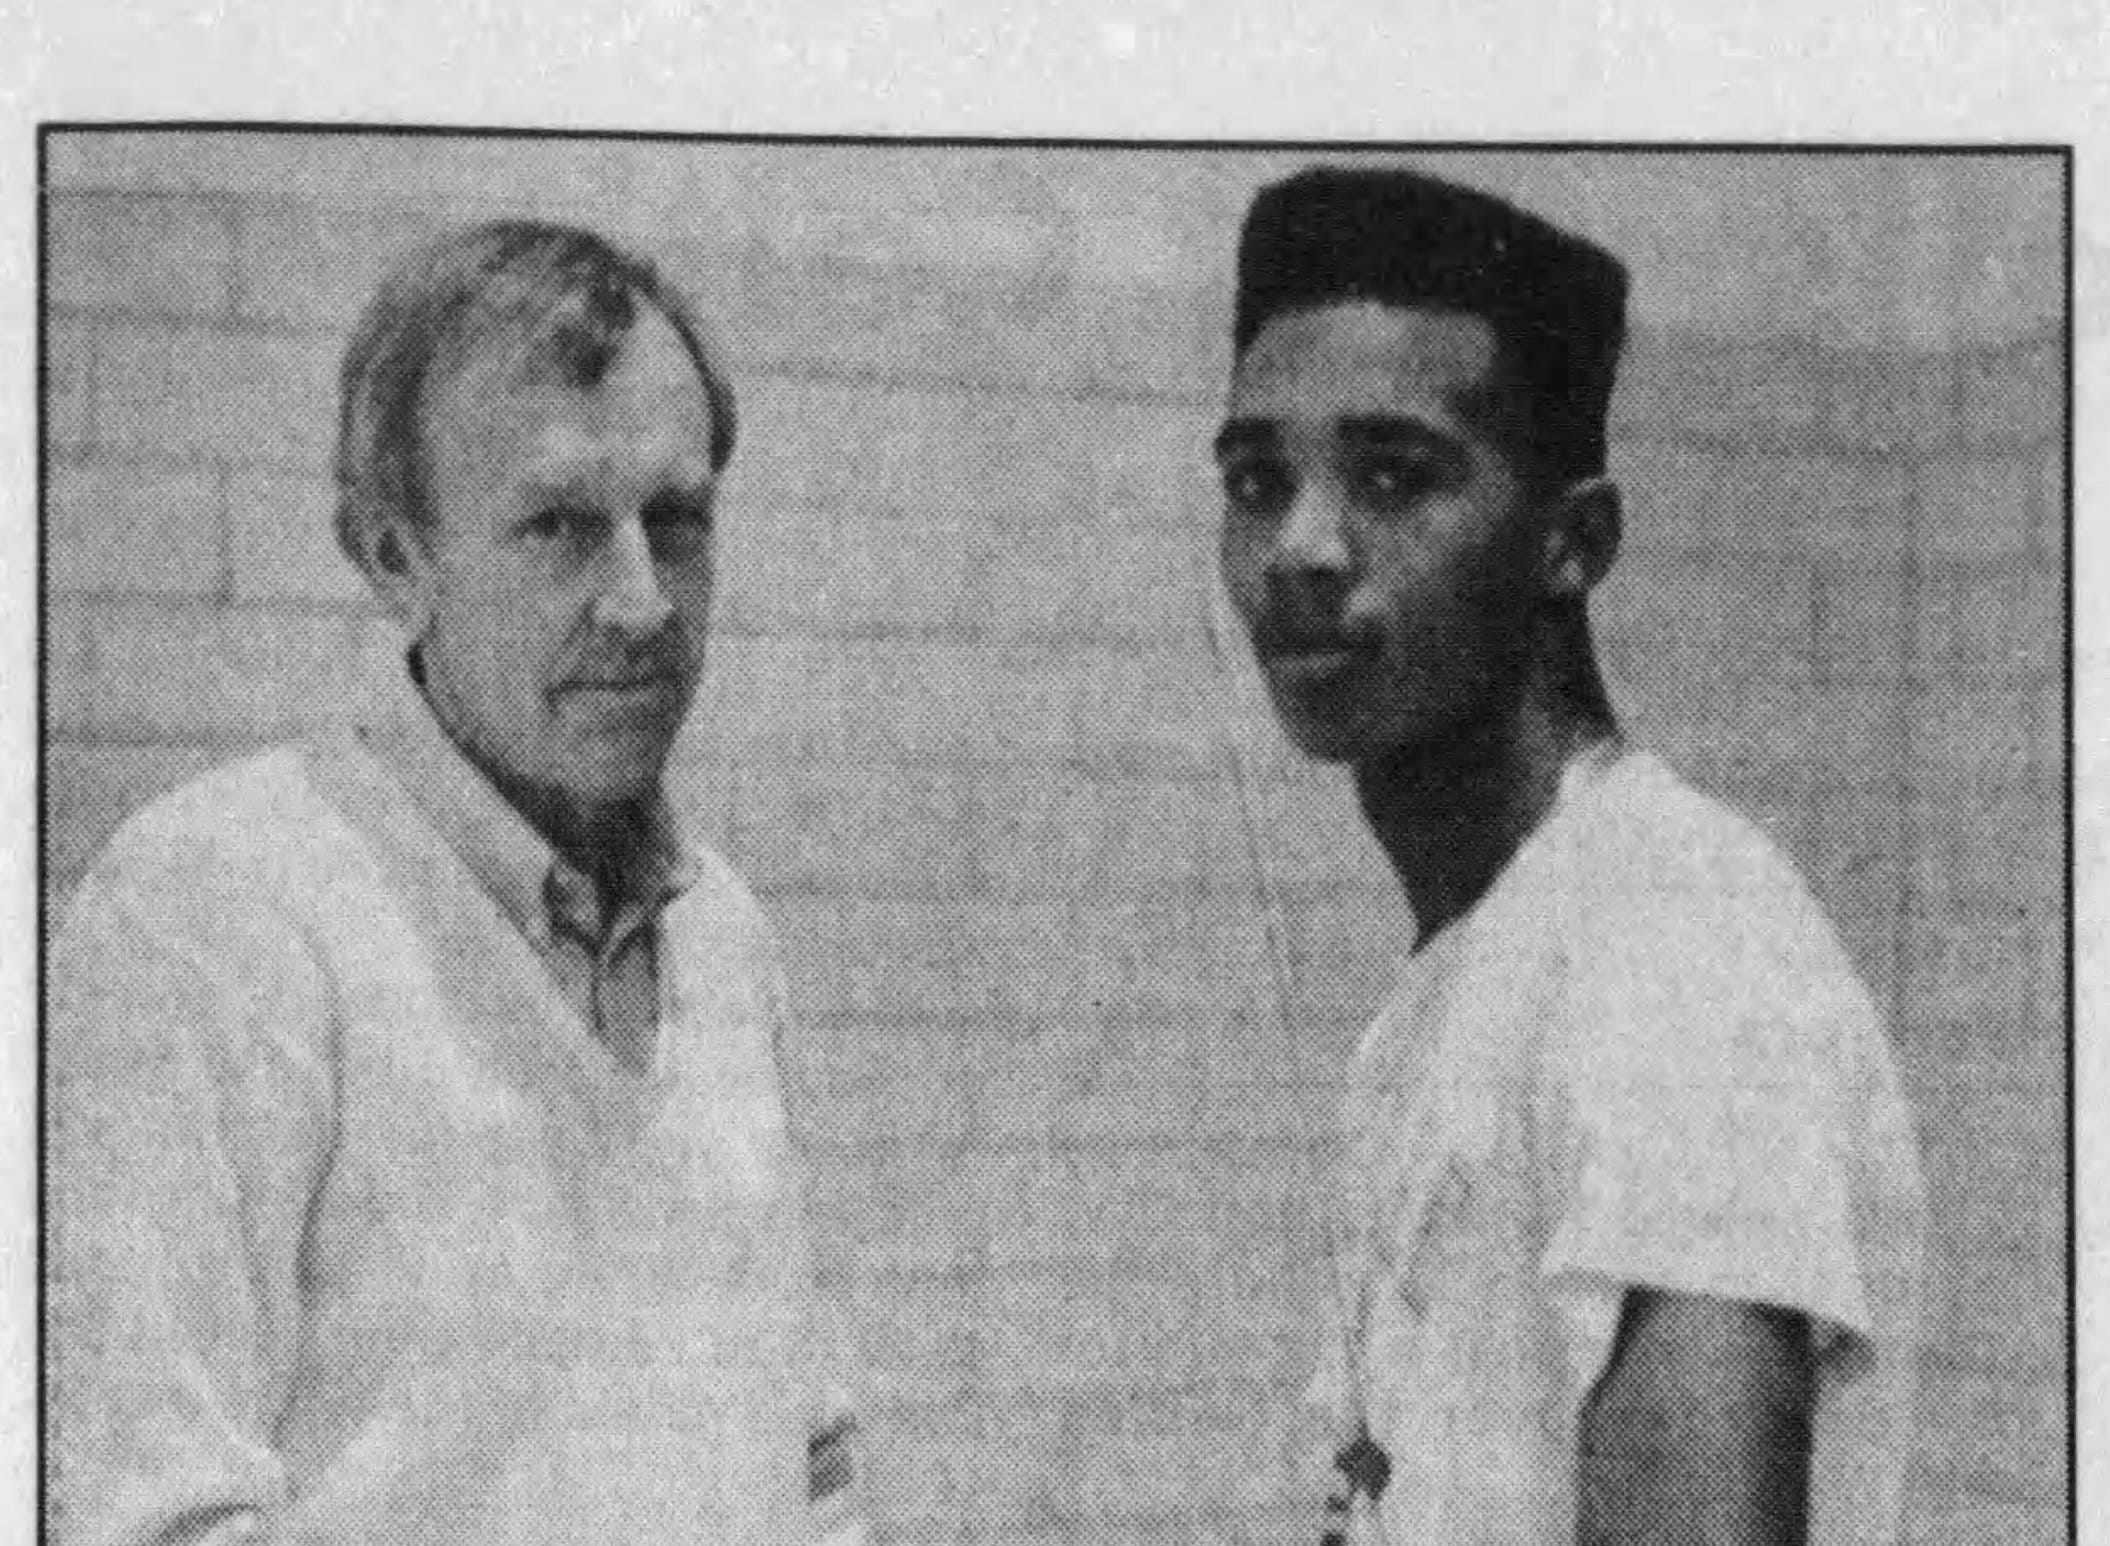 A News Leader story on Keith Scott's AAU success from 1989.